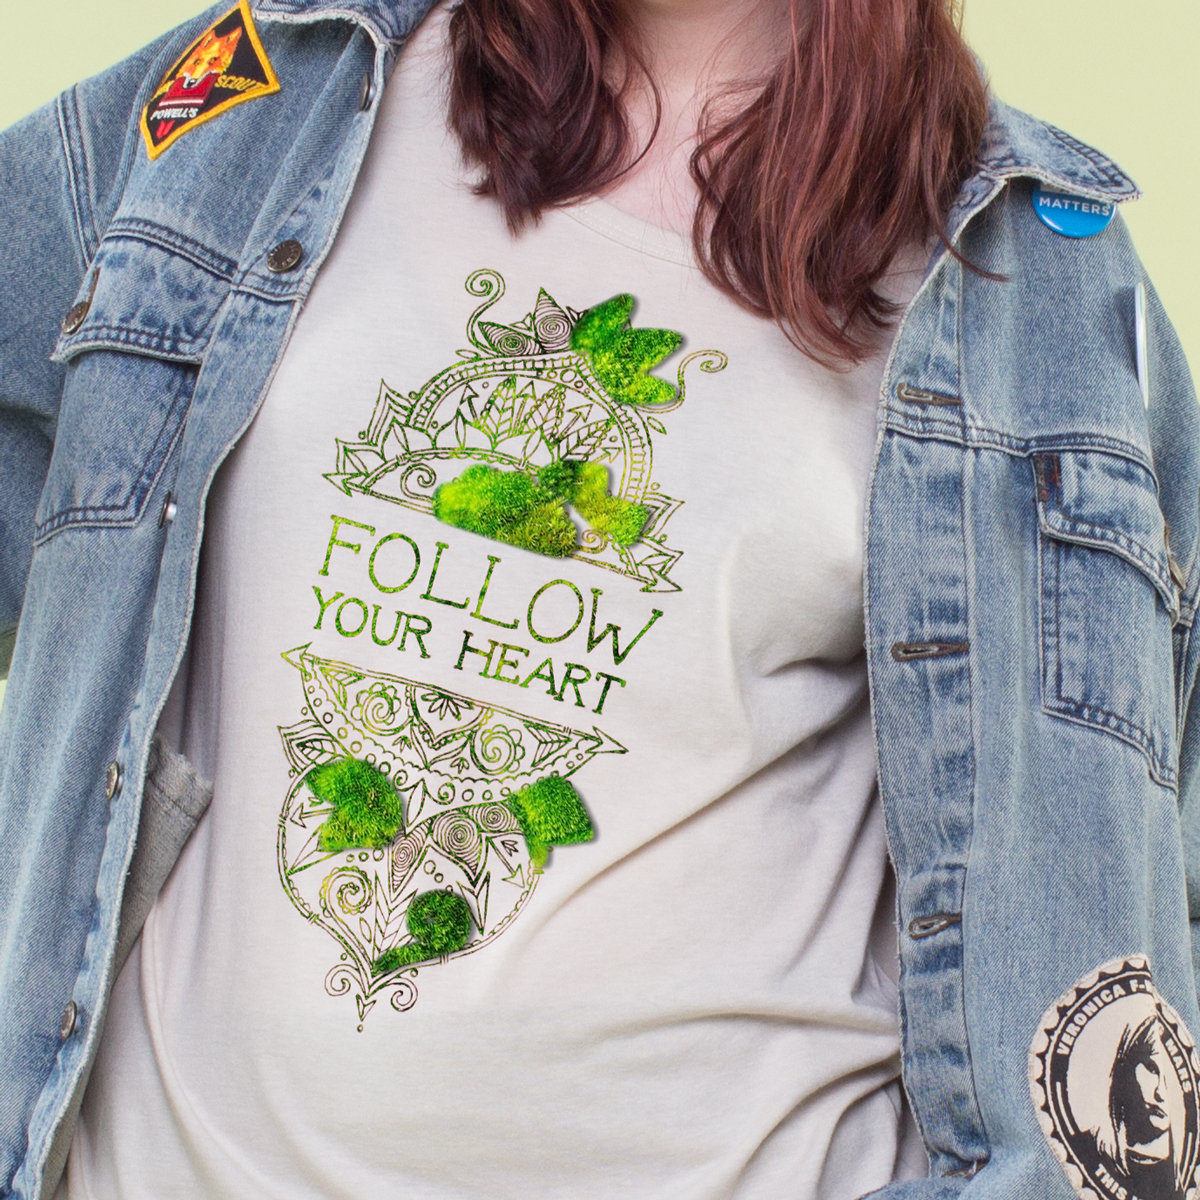 AprilFools 02 - Introducing: Flower Sprouting Tees!